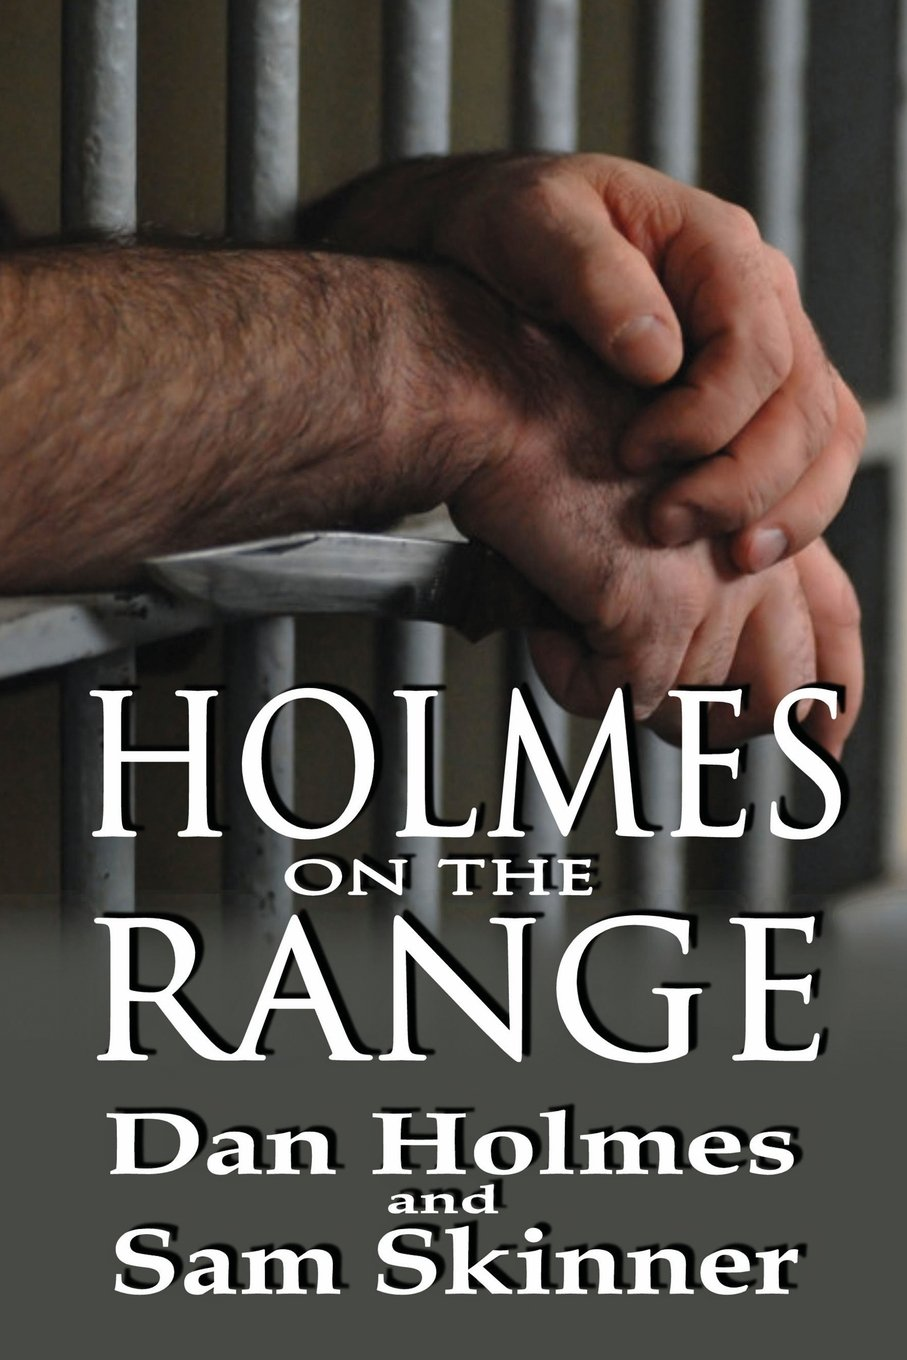 Holmes on the Range: A Novel of Bad Choices, Harsh Realities and Life in the Federal Prison System